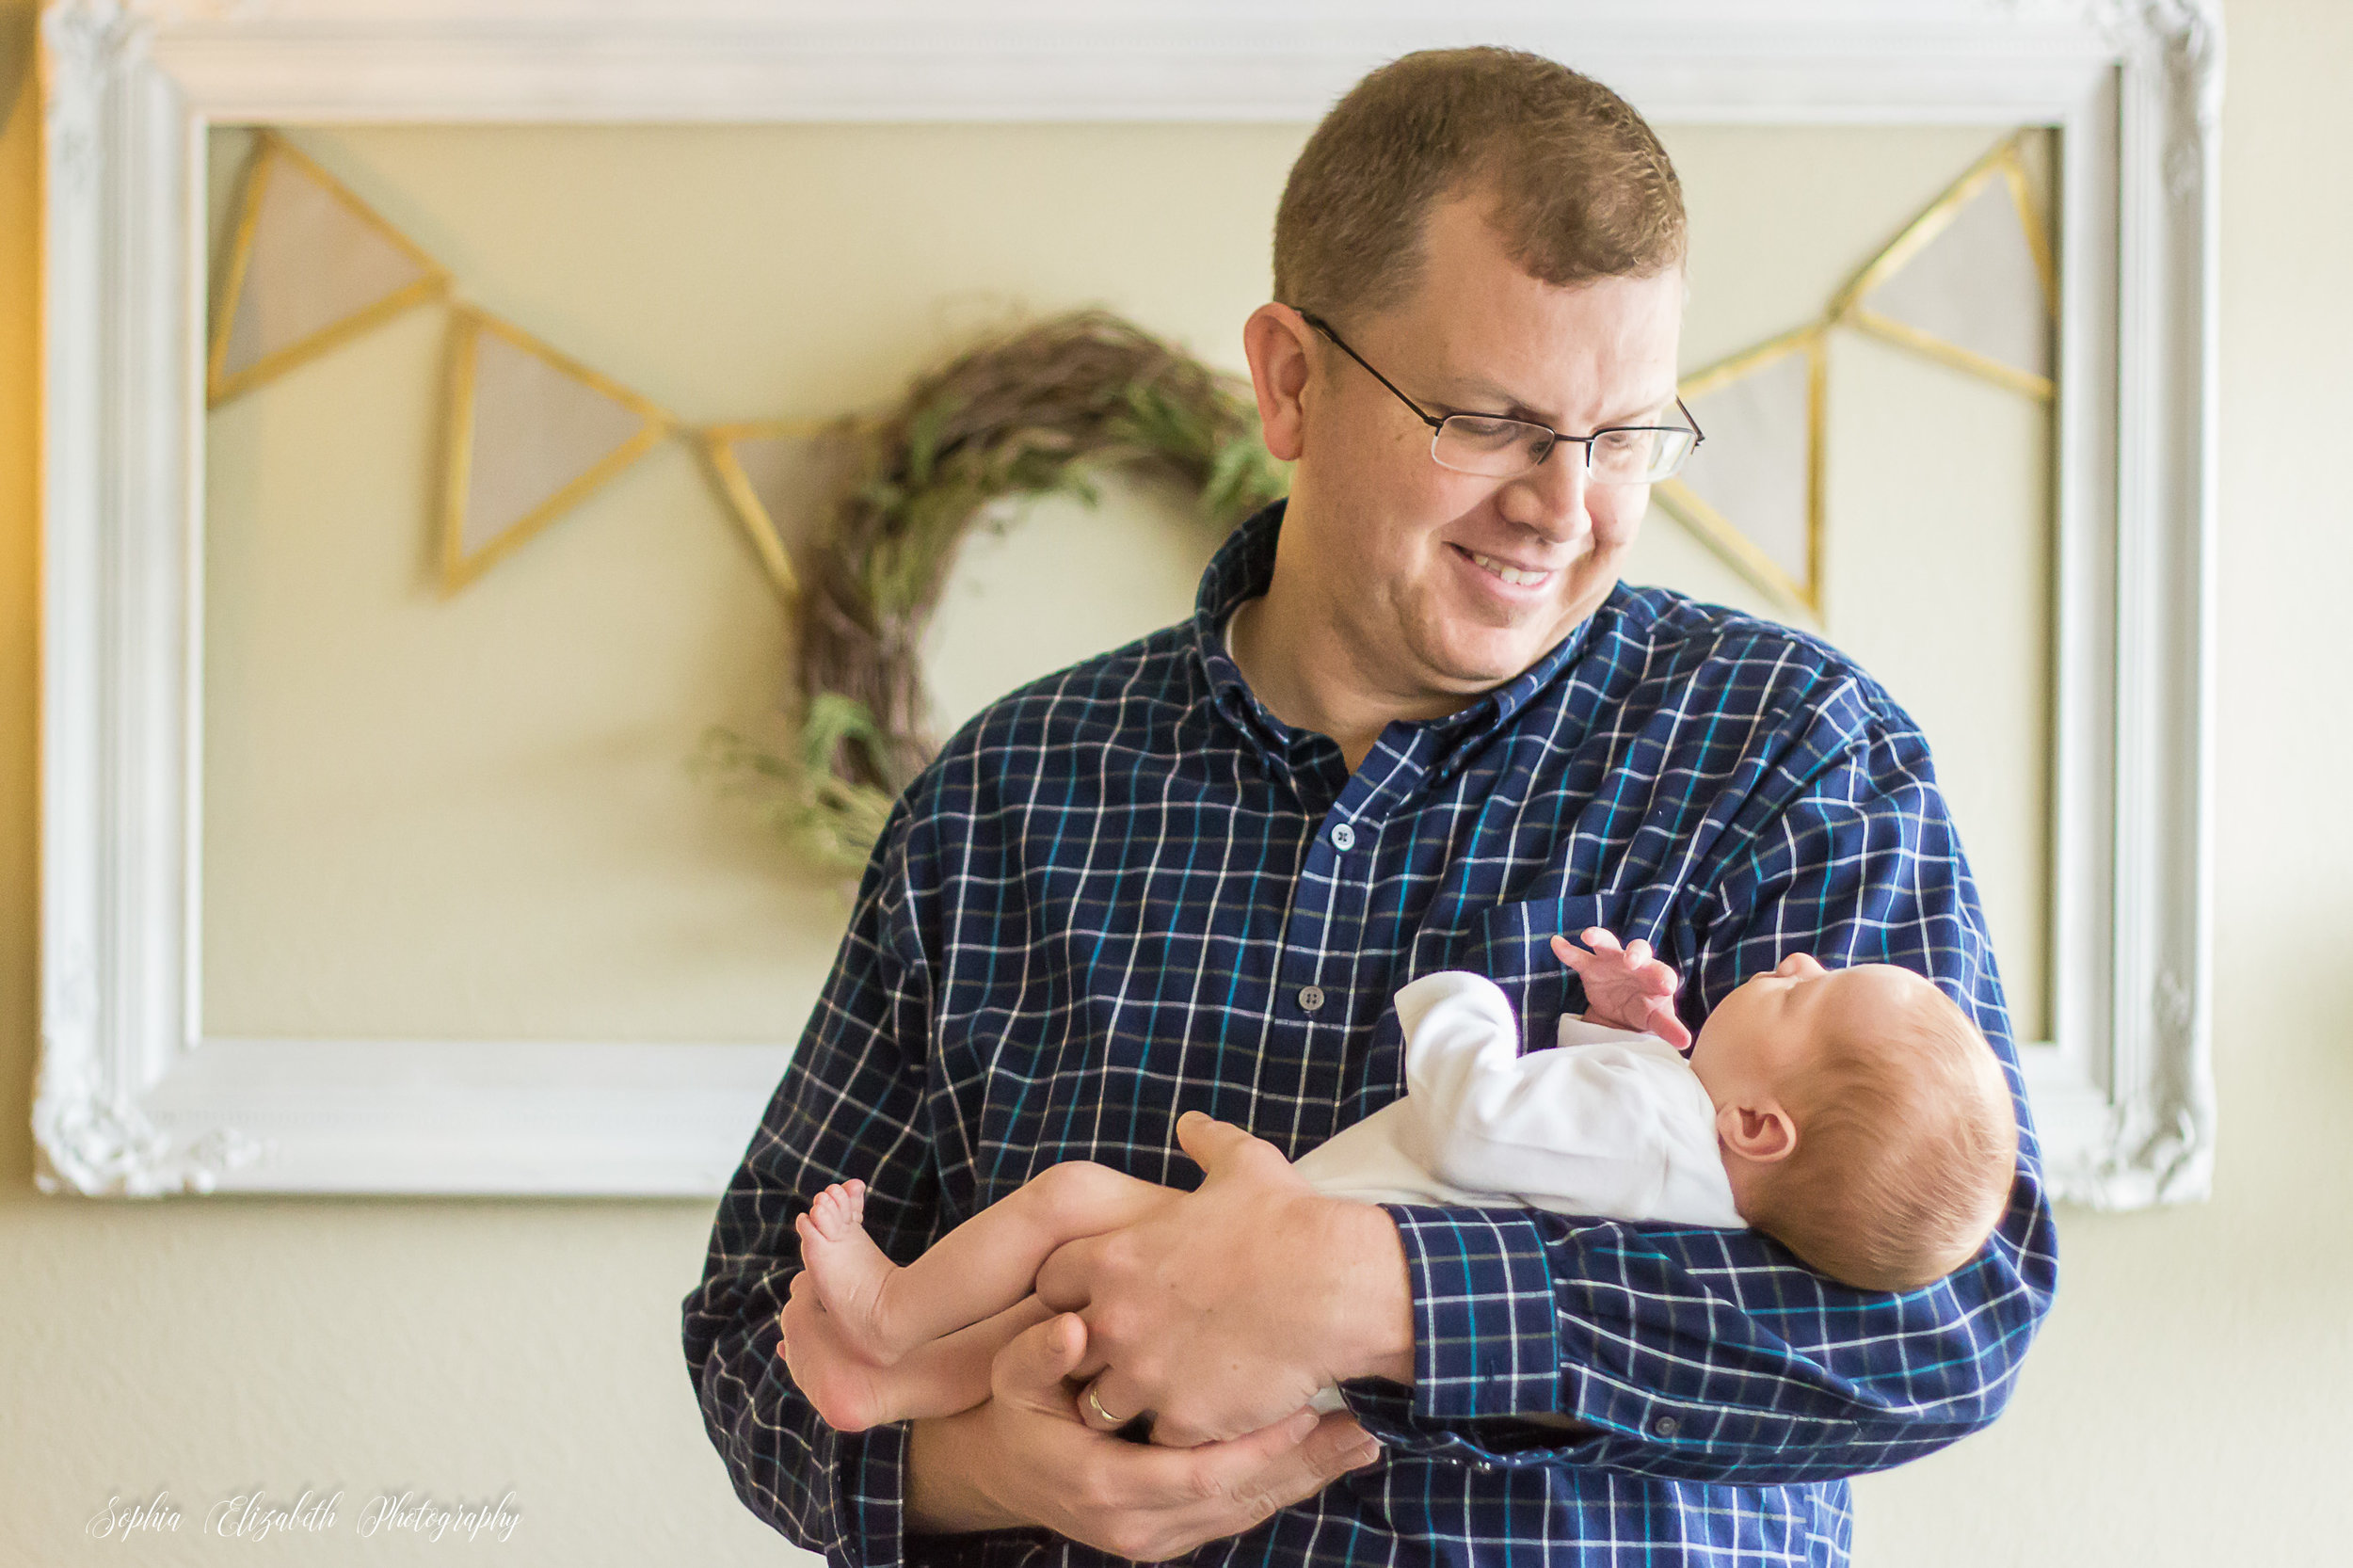 Bessey-Newborn-family-lifestyle-session-bringing-new-baby-home-san-diego-photography (21 of 82).jpg